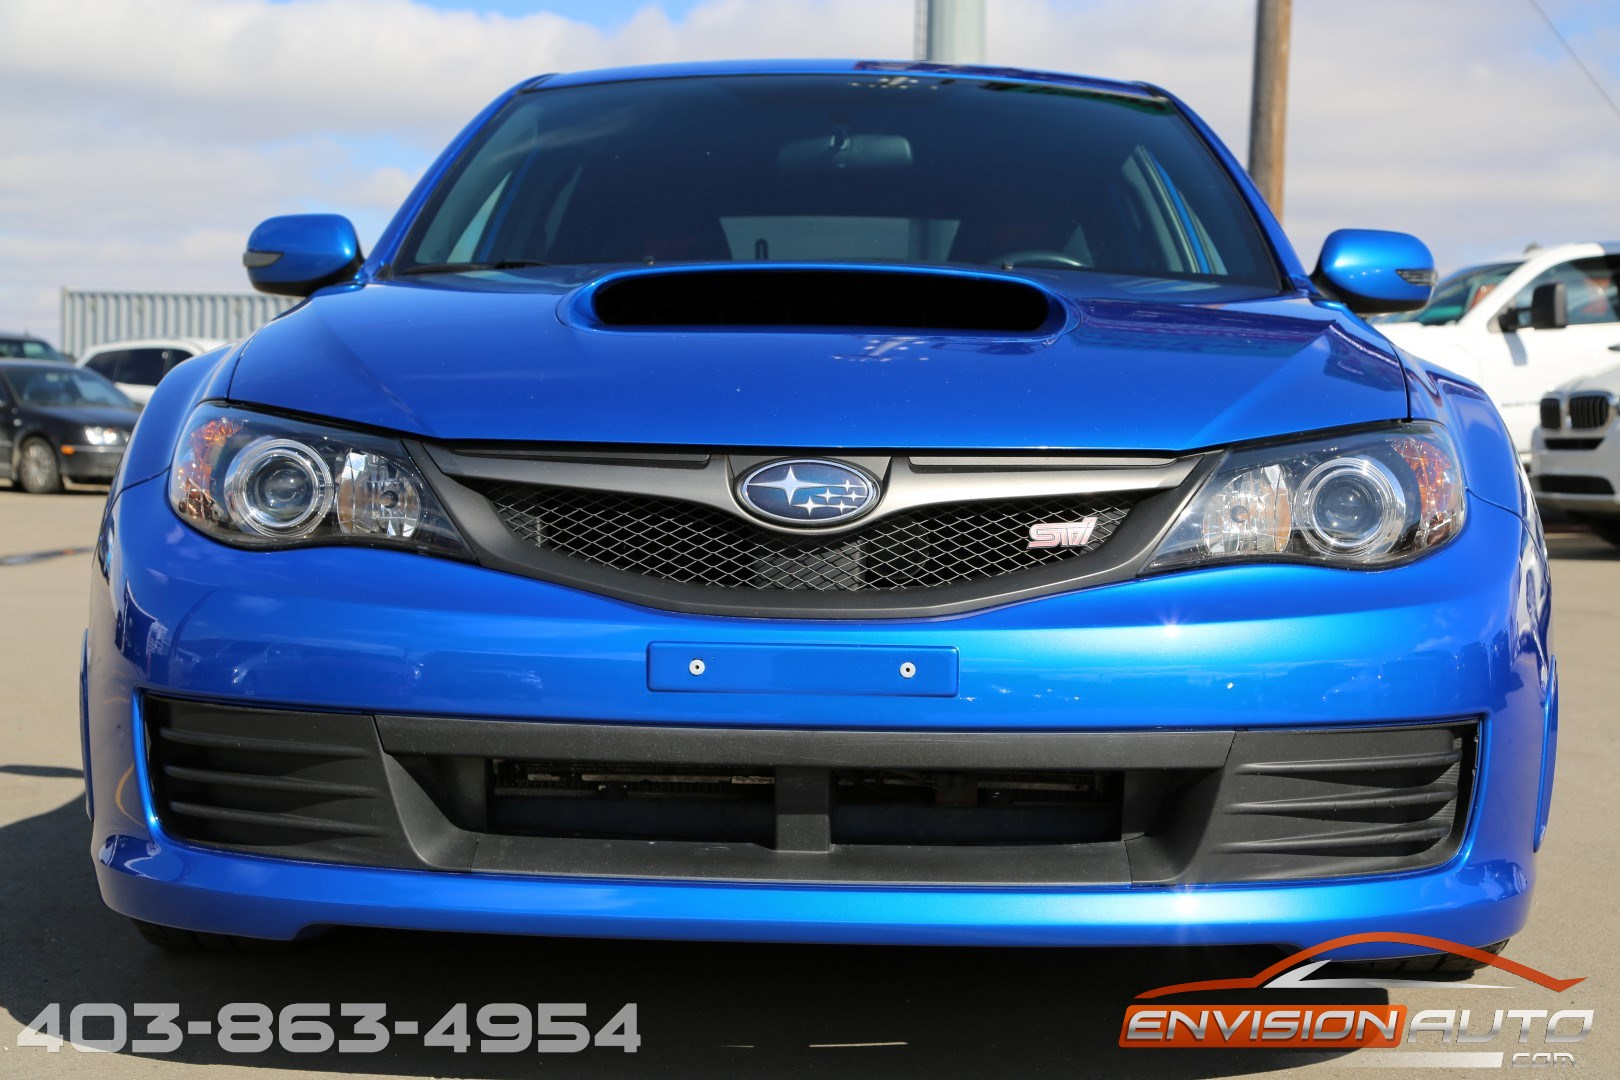 2010 subaru impreza wrx sti custom built engine only 90kms